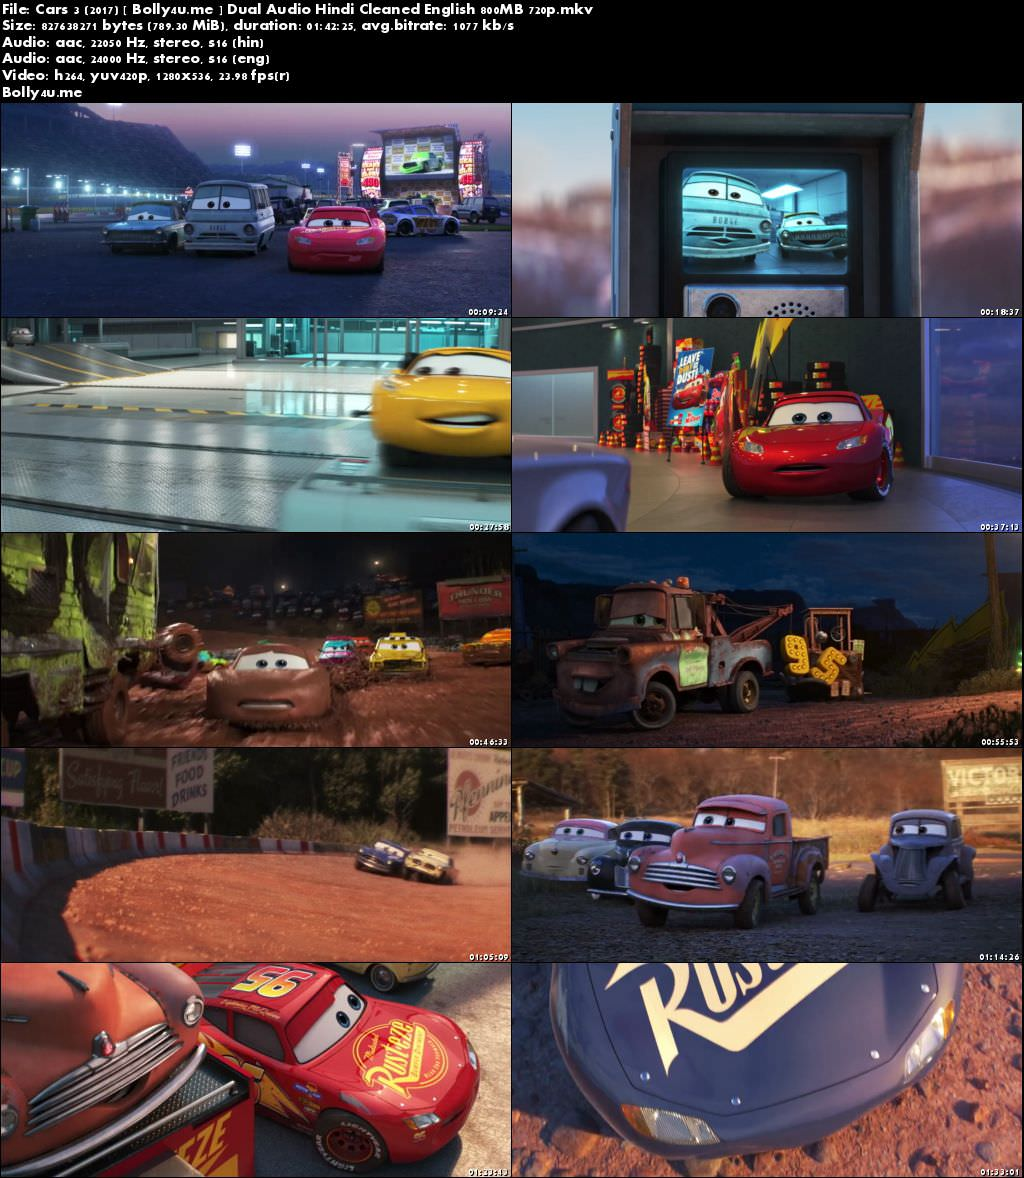 Cars 3 2017 BRRip 350MB Hindi Dubbed Dual Audio 480p Download